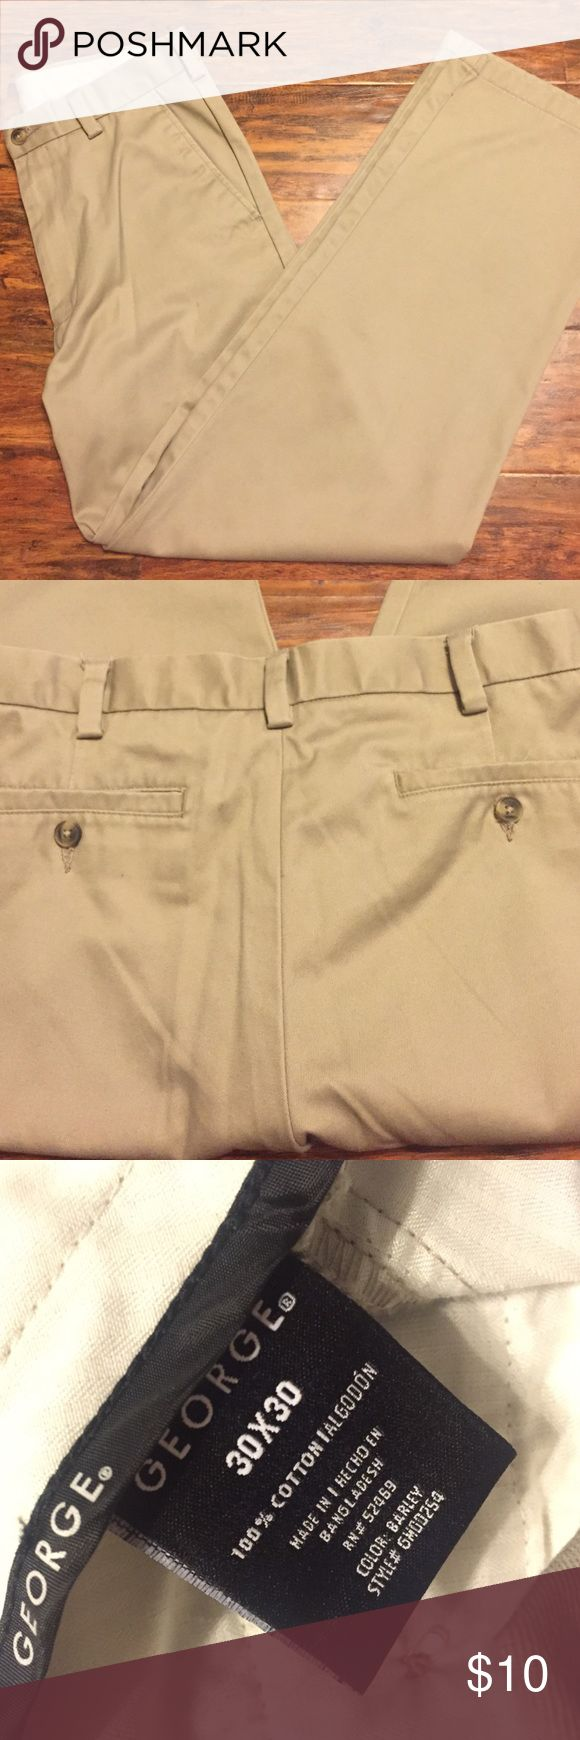 George Tan Dress Pants for Men Light tan George dress pants for men. In perfect condition, worn a few times; no signs of worn out/rips/tears/stains :) Comment & let me know if you're interested I'll have them shipped immediately! George Pants Dress